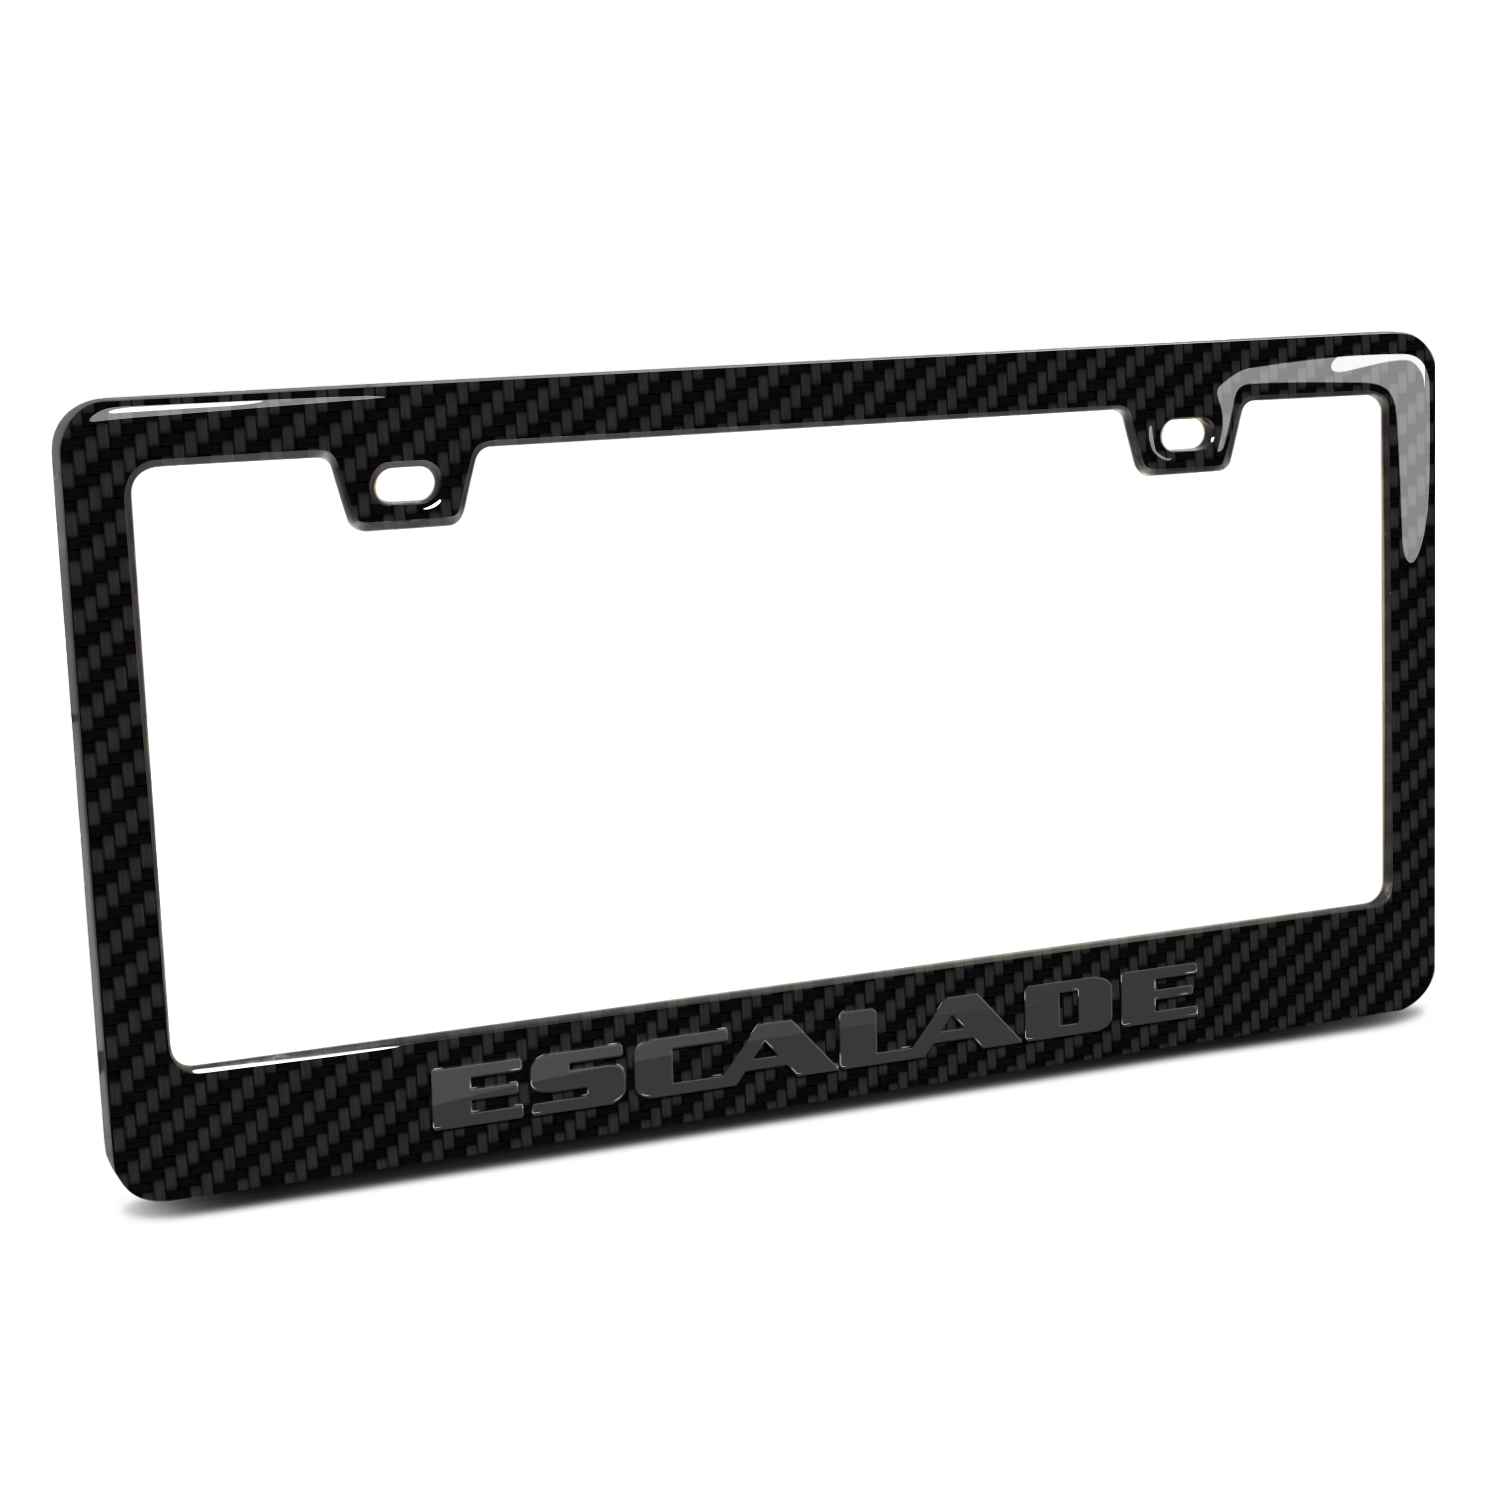 Cadillac Escalade in 3D Black on Black Real 3K Carbon Fiber Finish ABS Plastic License Plate Frame